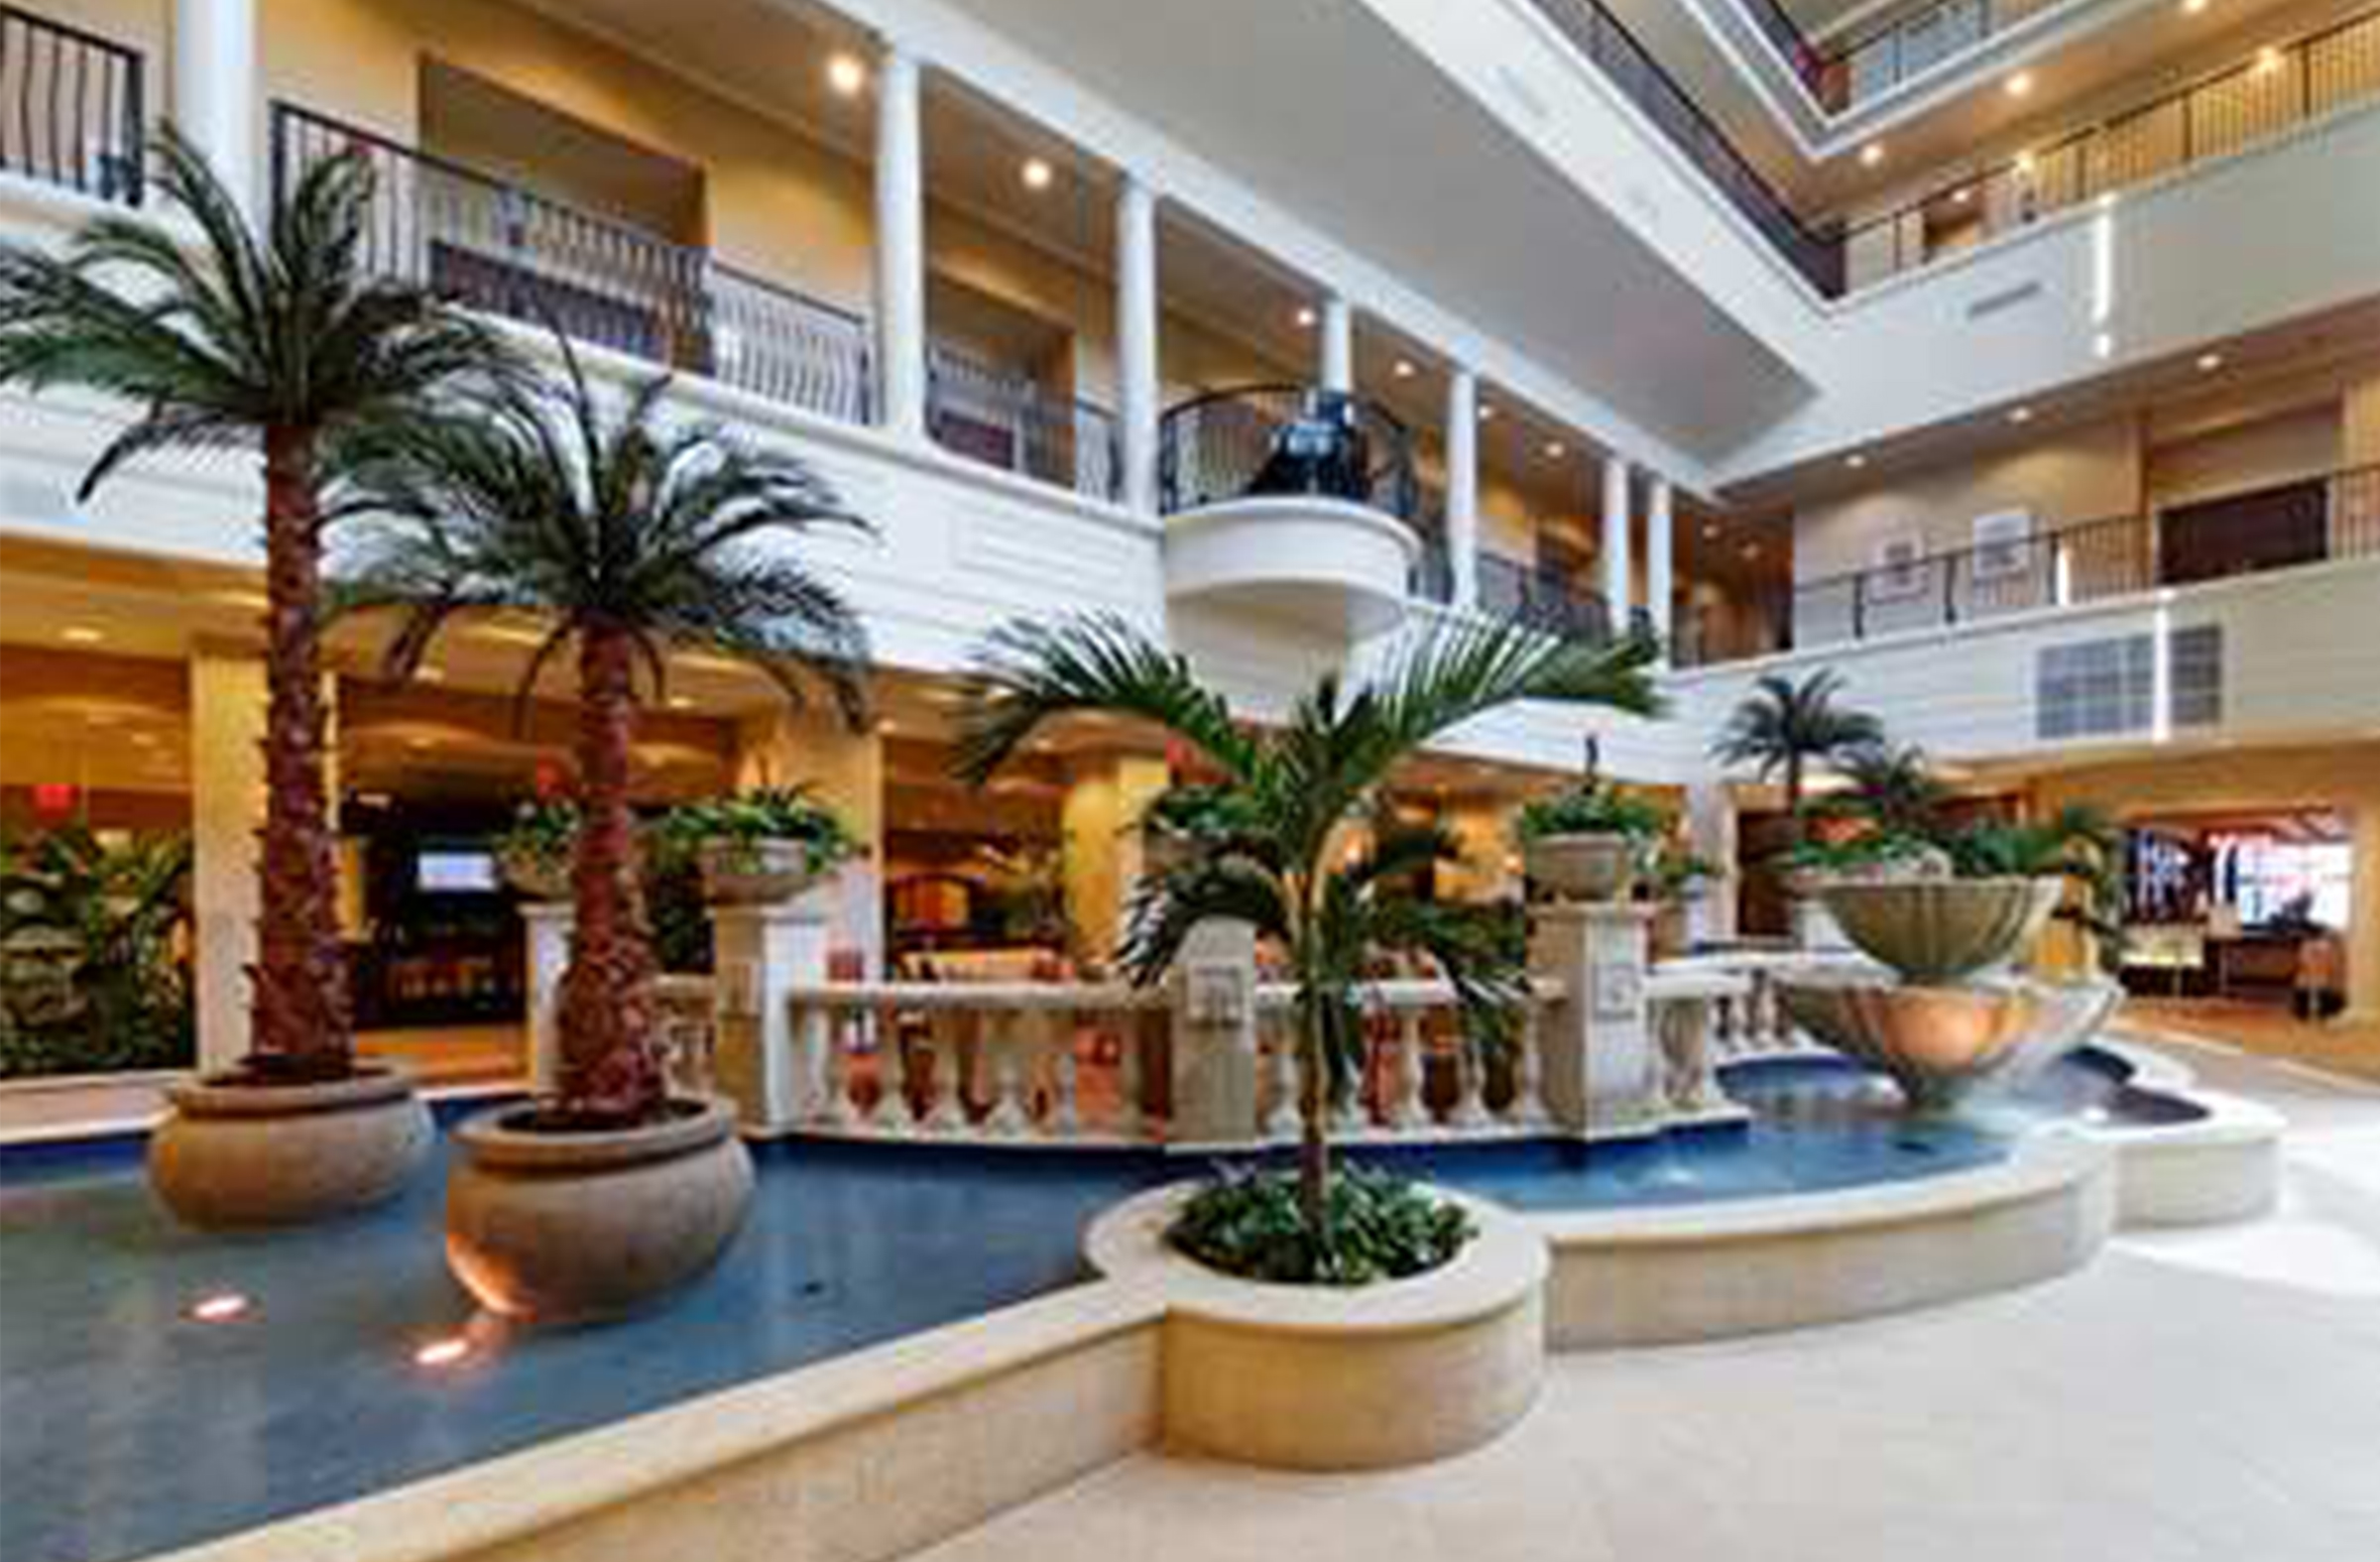 Embassy Suites Tampa Florida lobby